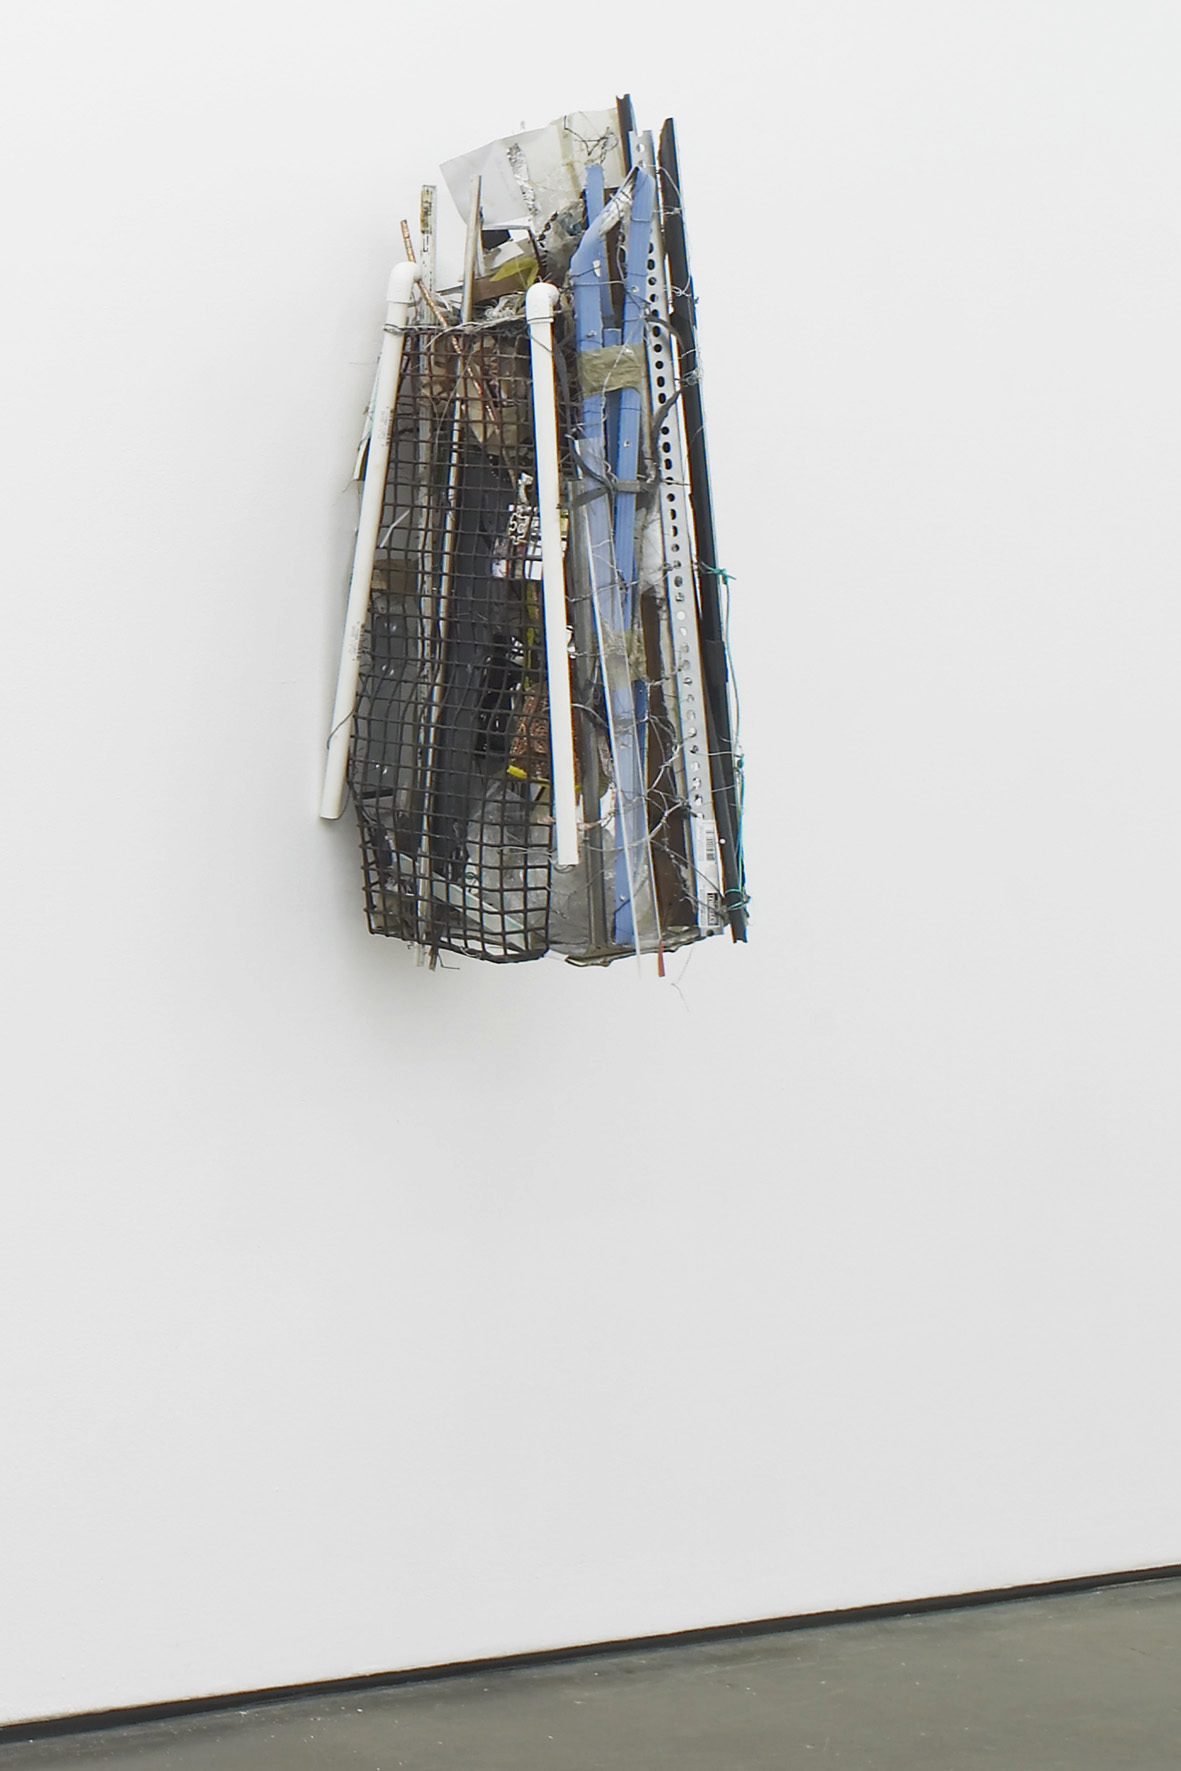 Robert Bittenbender Nocturnal Digest 2015 Wood, steel, photographs, aluminium, plastic, acrylic glass, jewelry, rubber, rope, paper, clothespins, zipties, metal wires, chains, assorted tubes, bottles 97 x 29 x 42 cm / 38.2 x 11.4 x 16.5 in HS12-RB5457S